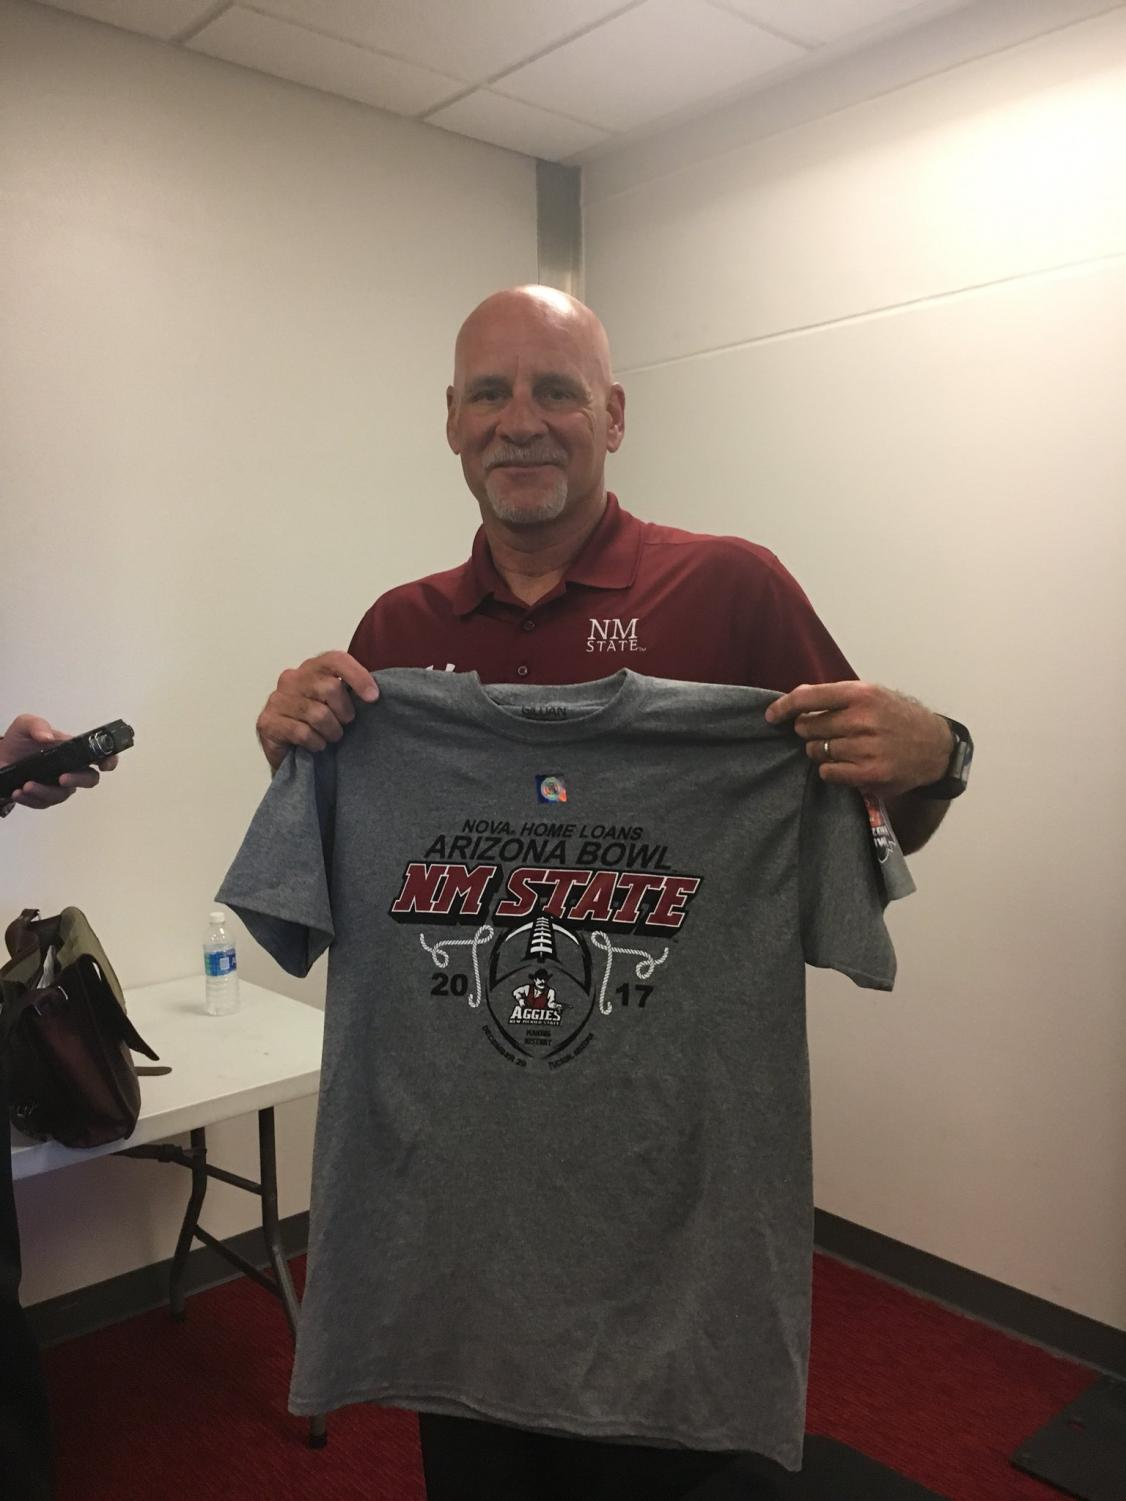 NMSU head coach Doug Martin takes picture with NOVA Home Loans Arizona Bowl t-shirt. The Aggies will be making their first bowl appearance since 1960.